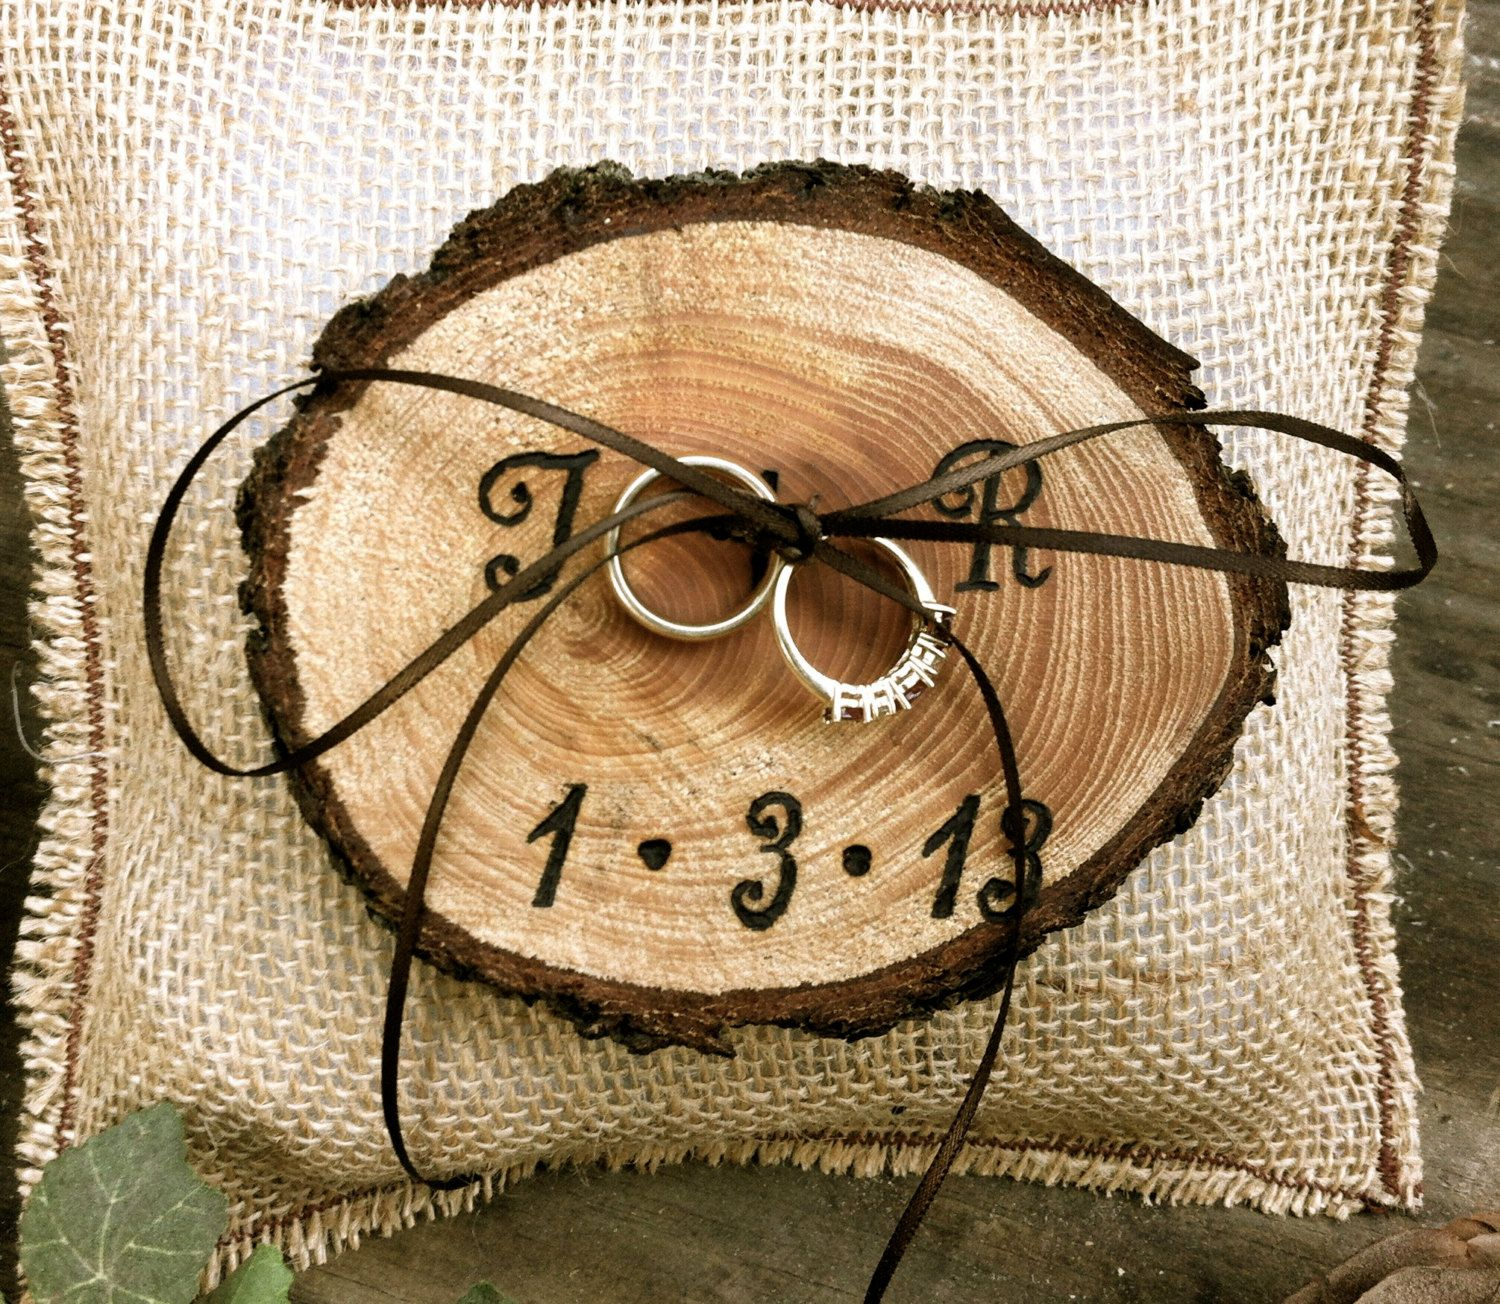 Rustic wedding ring bearer pillow holder forest country fall winter weddings. $26.00 via Etsy & Rustic wedding ring bearer pillow holder forest country fall ... pillowsntoast.com